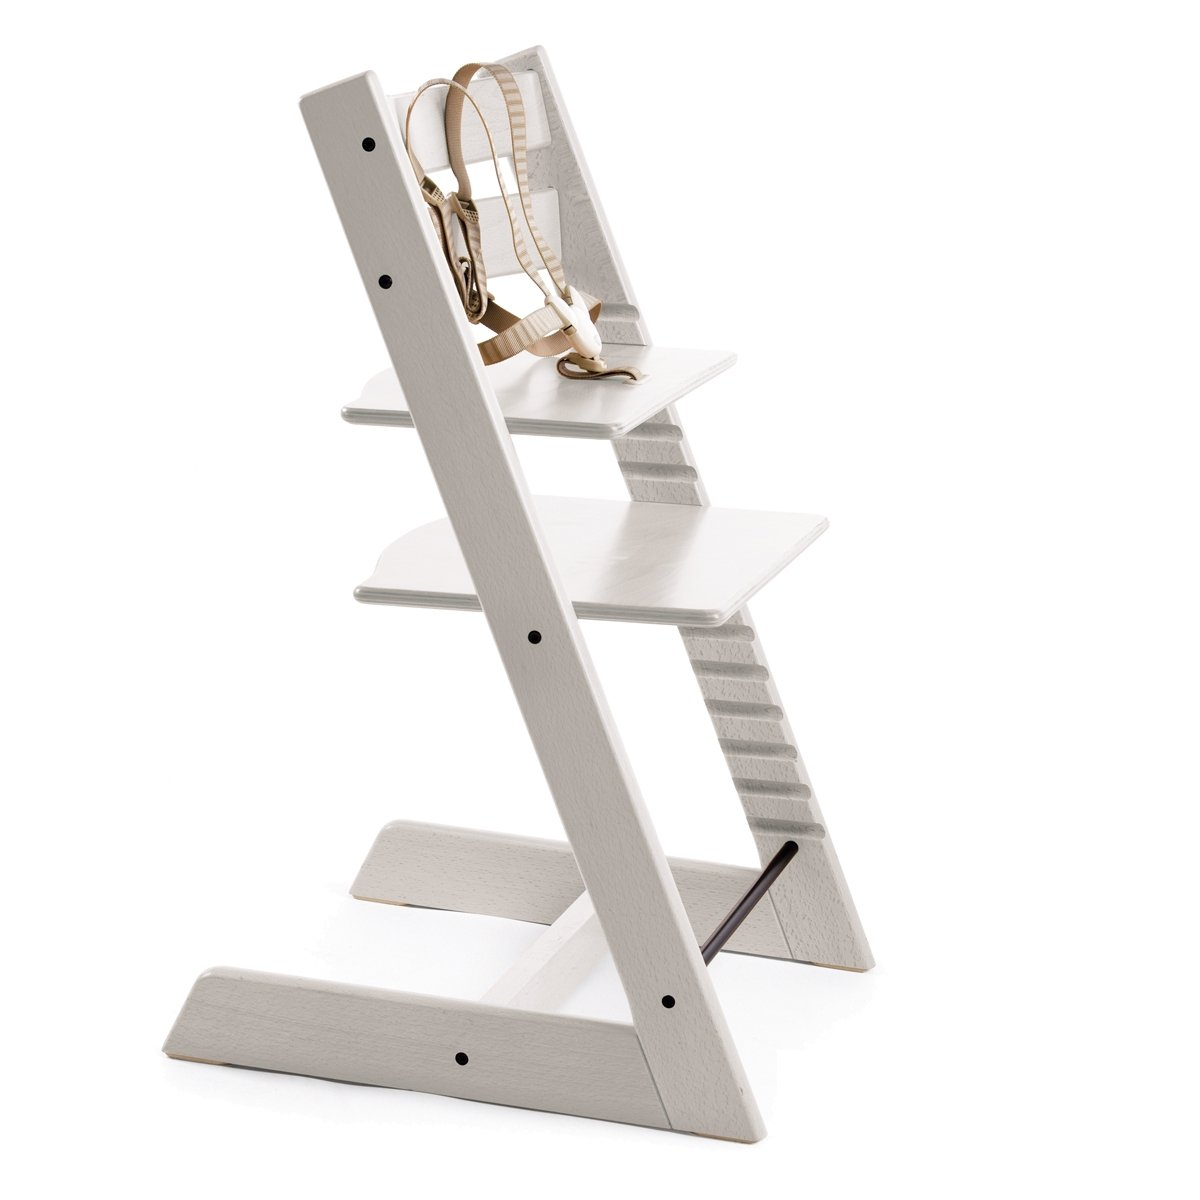 Stokke Tripp Trapp Chair, White